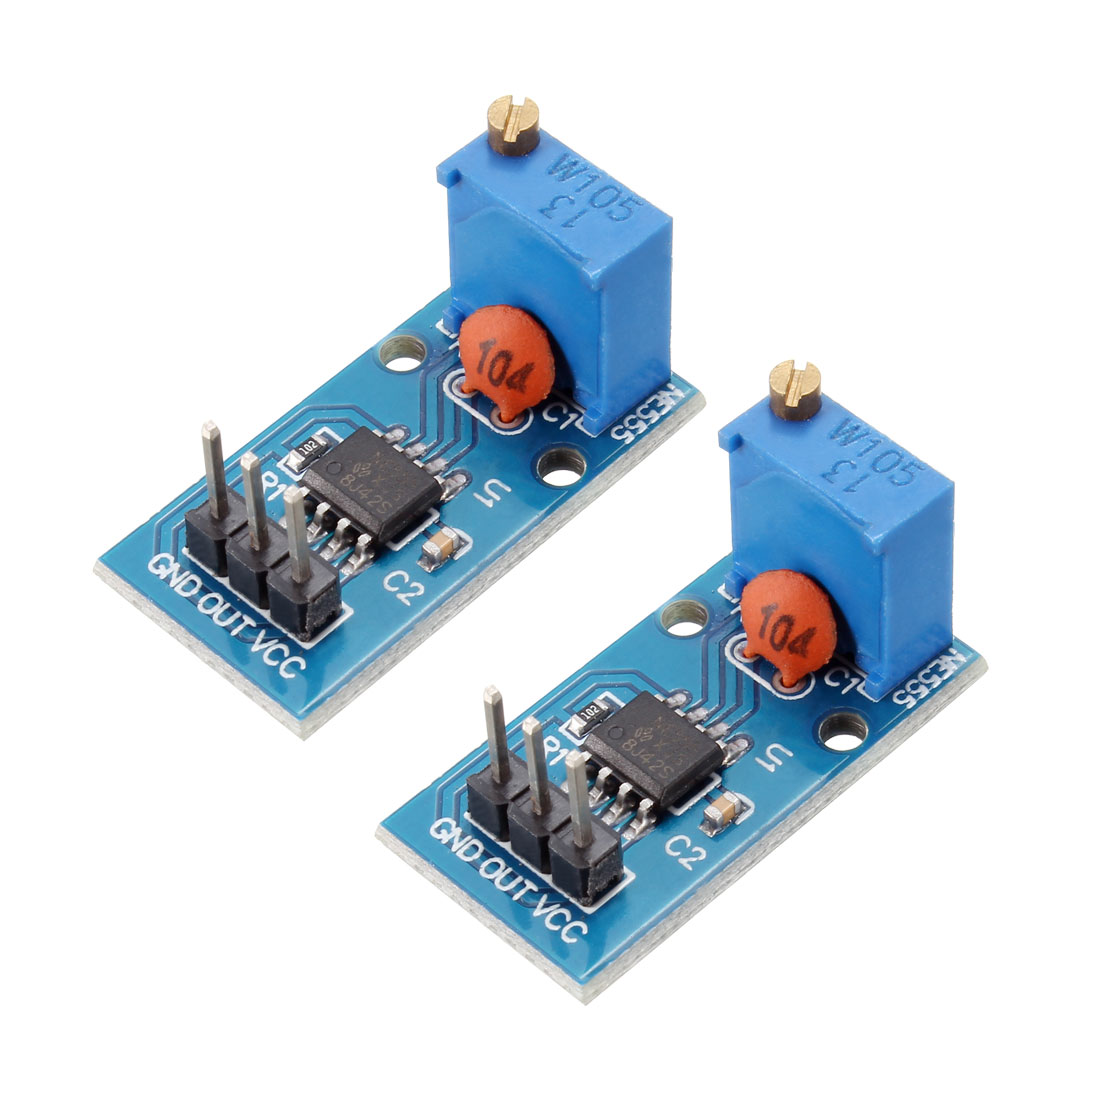 DC5-12V NE555 Square Wave Output Pulse Adjustable Frequency Module 2pcs